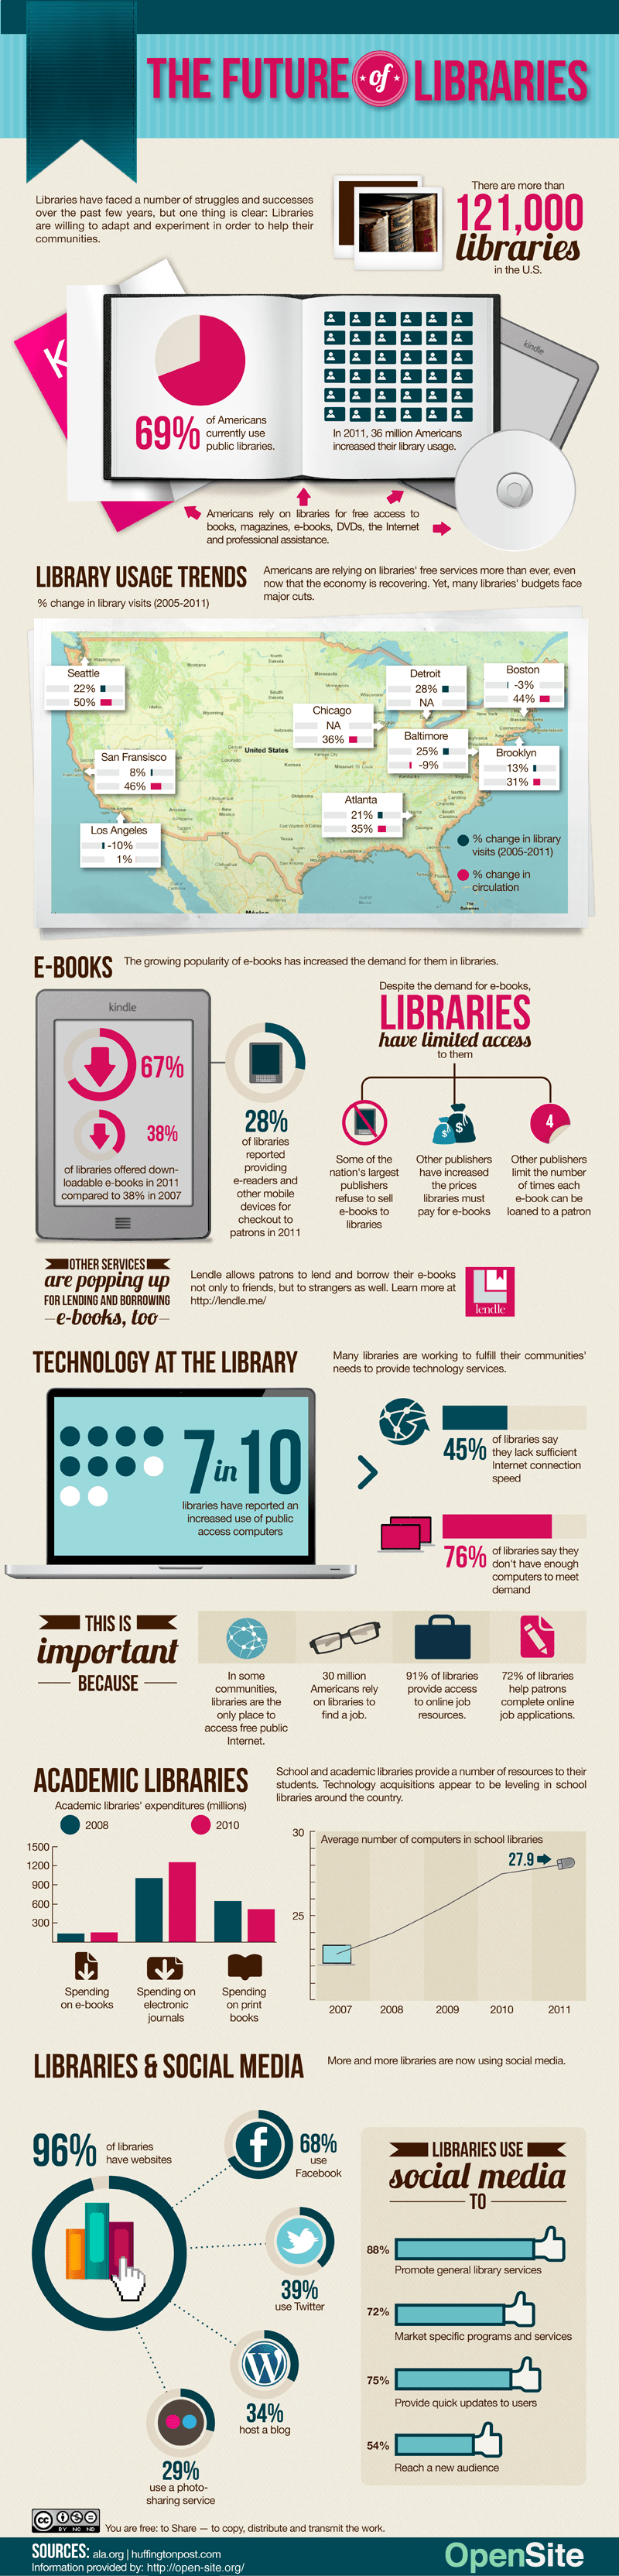 The Future of Libraries Infographic